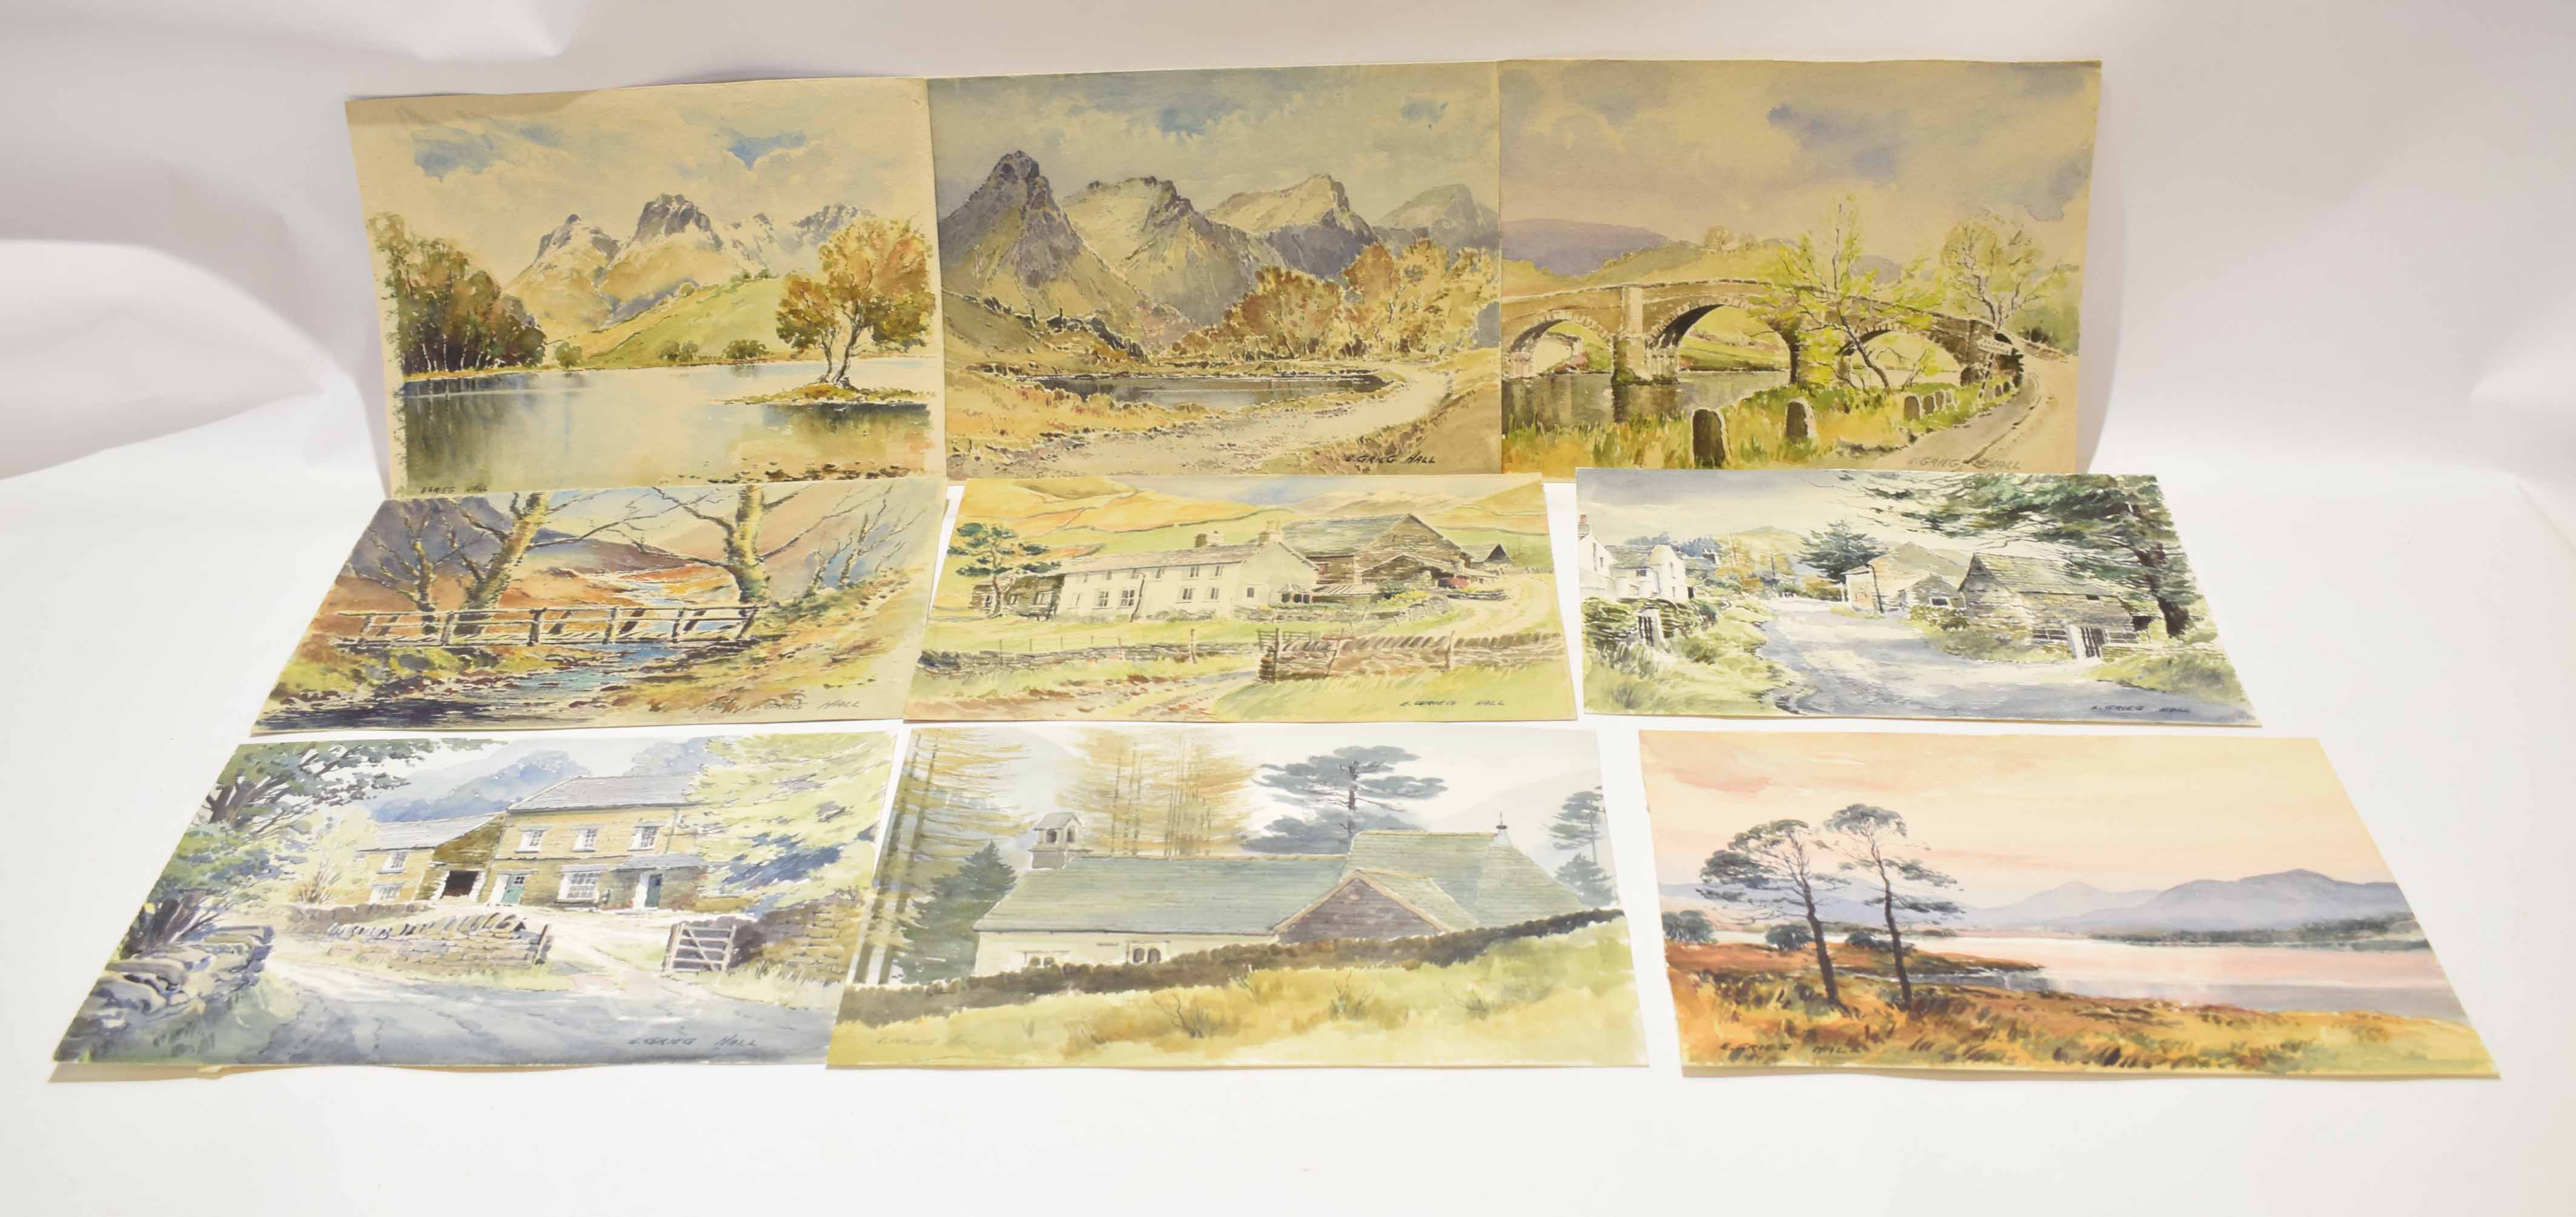 E Greig Hall, two signed watercolours, Anglesey and Red Bank Road, Grasmere, 38 x 51cm, both - Image 2 of 2